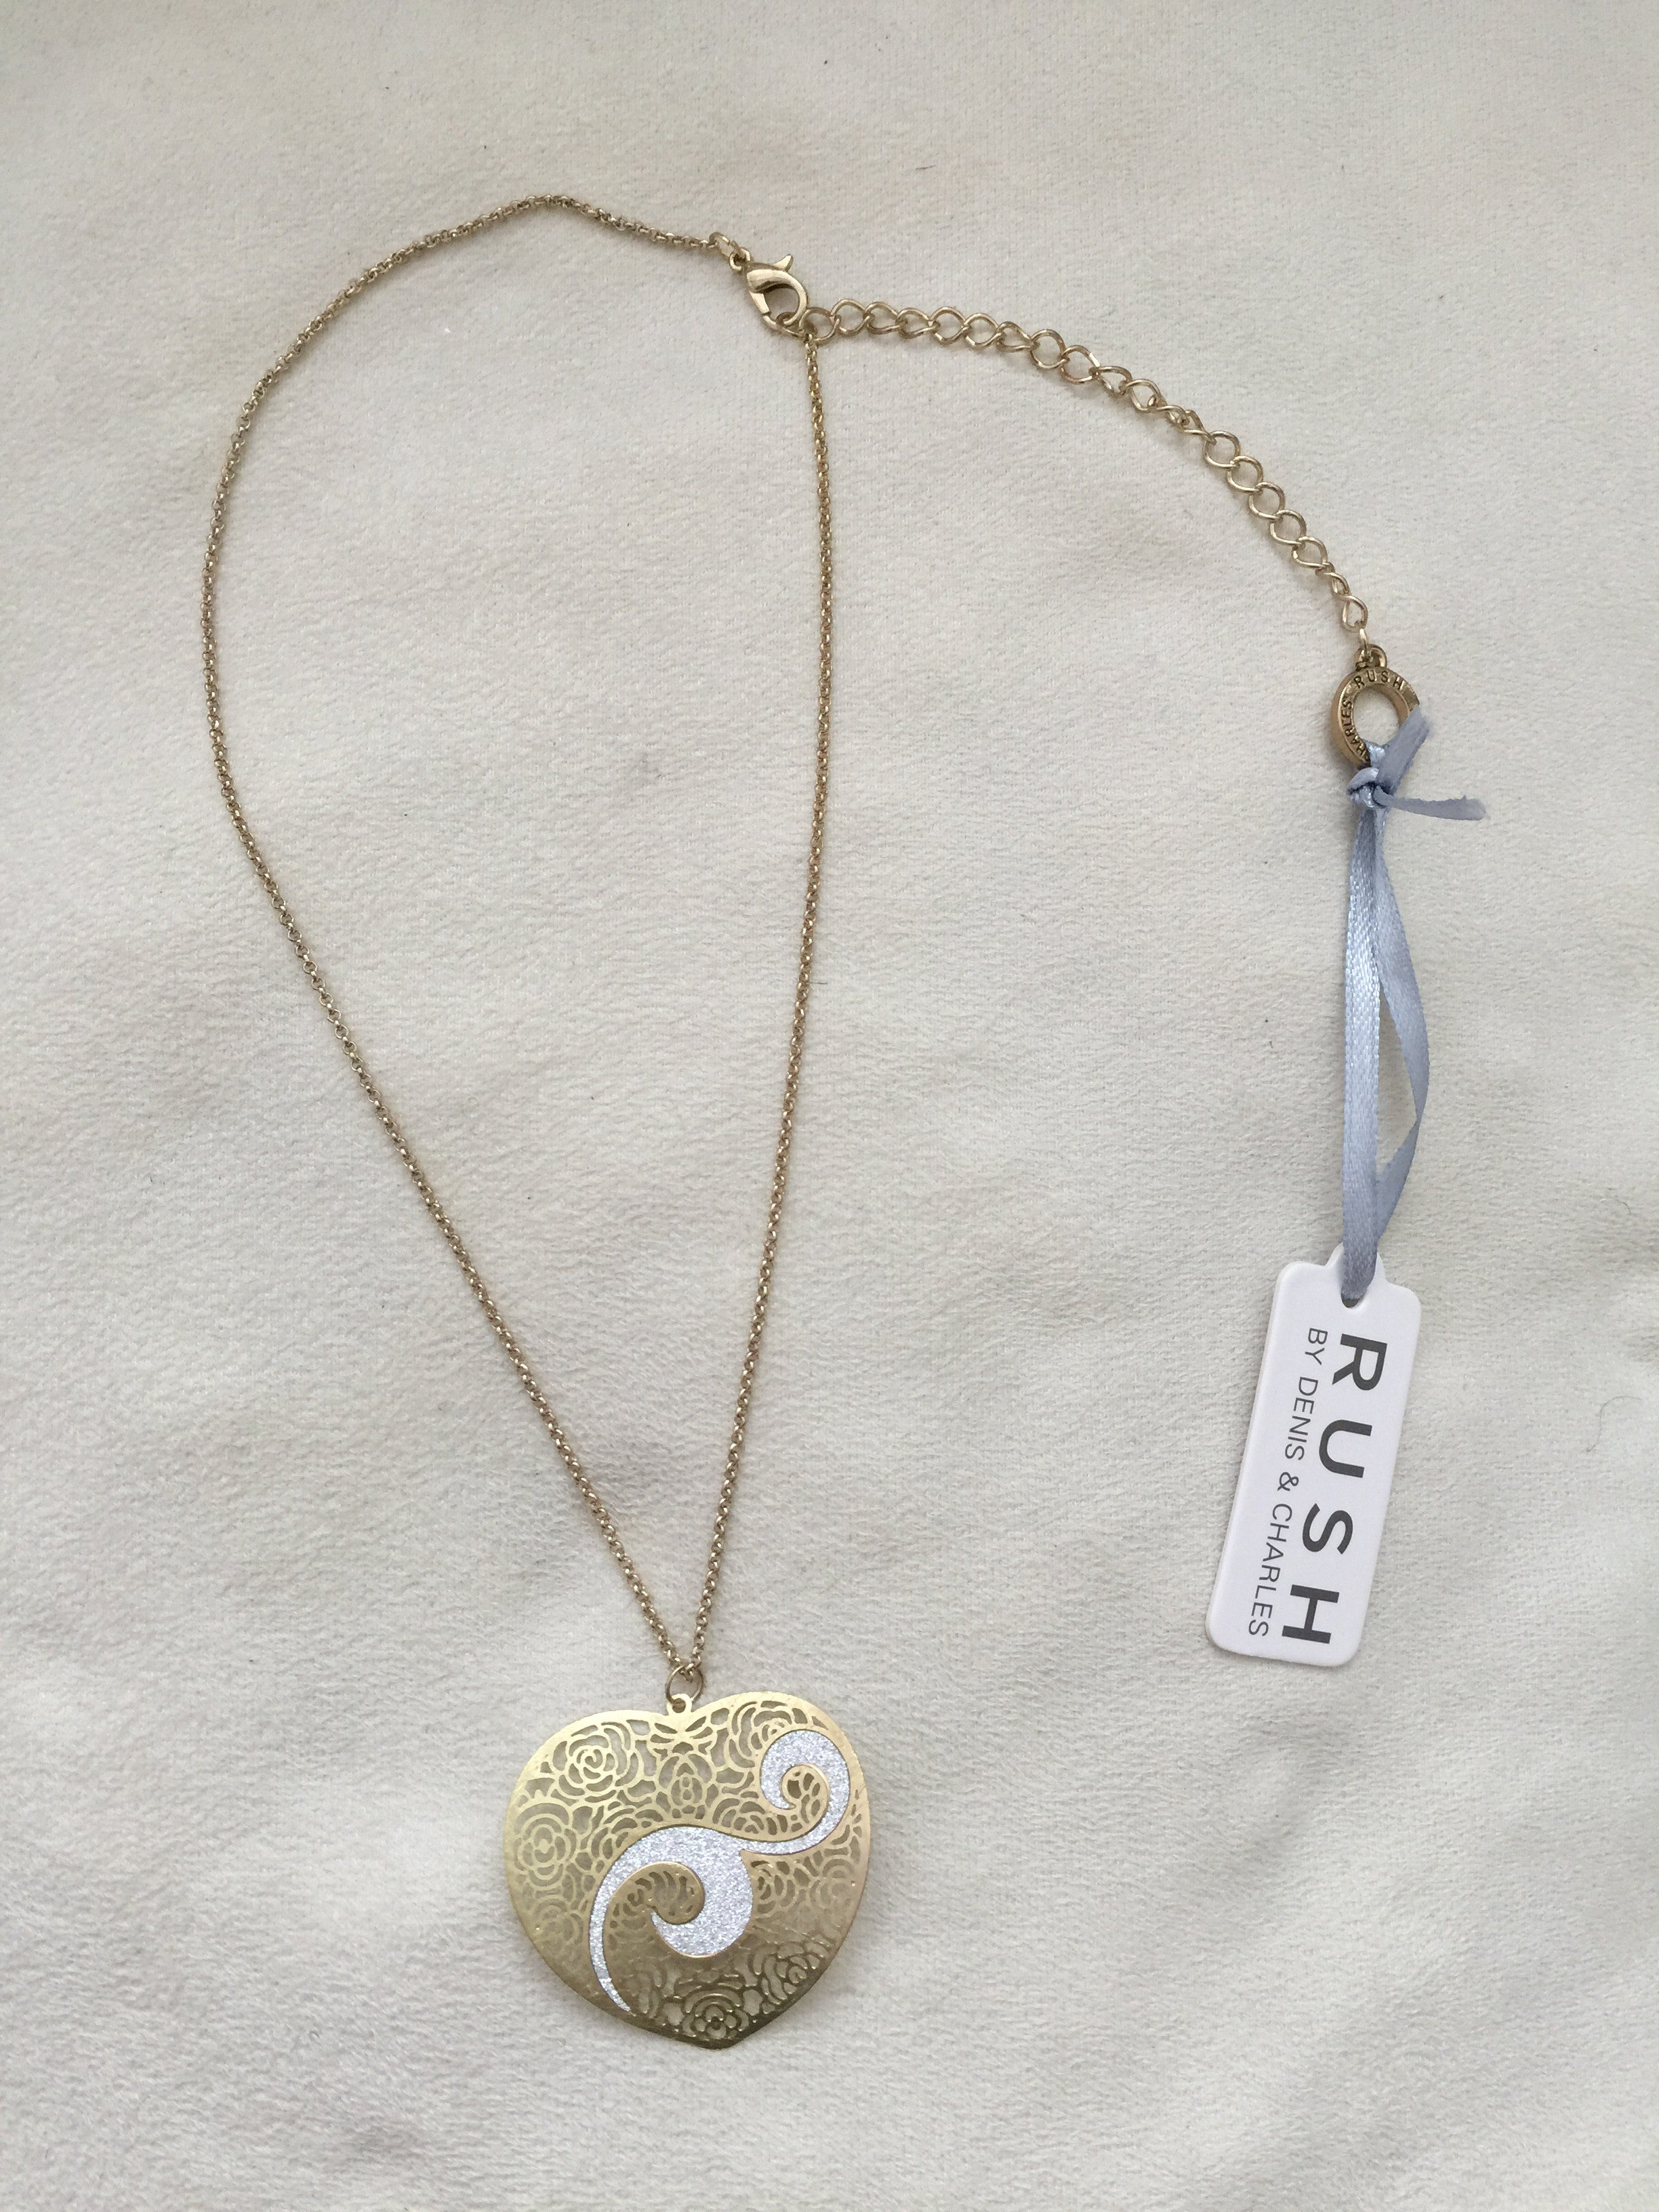 Scratched Gold/Glitter: Silver Heart Pendant - Rush - Necklace - TOPGEARNY